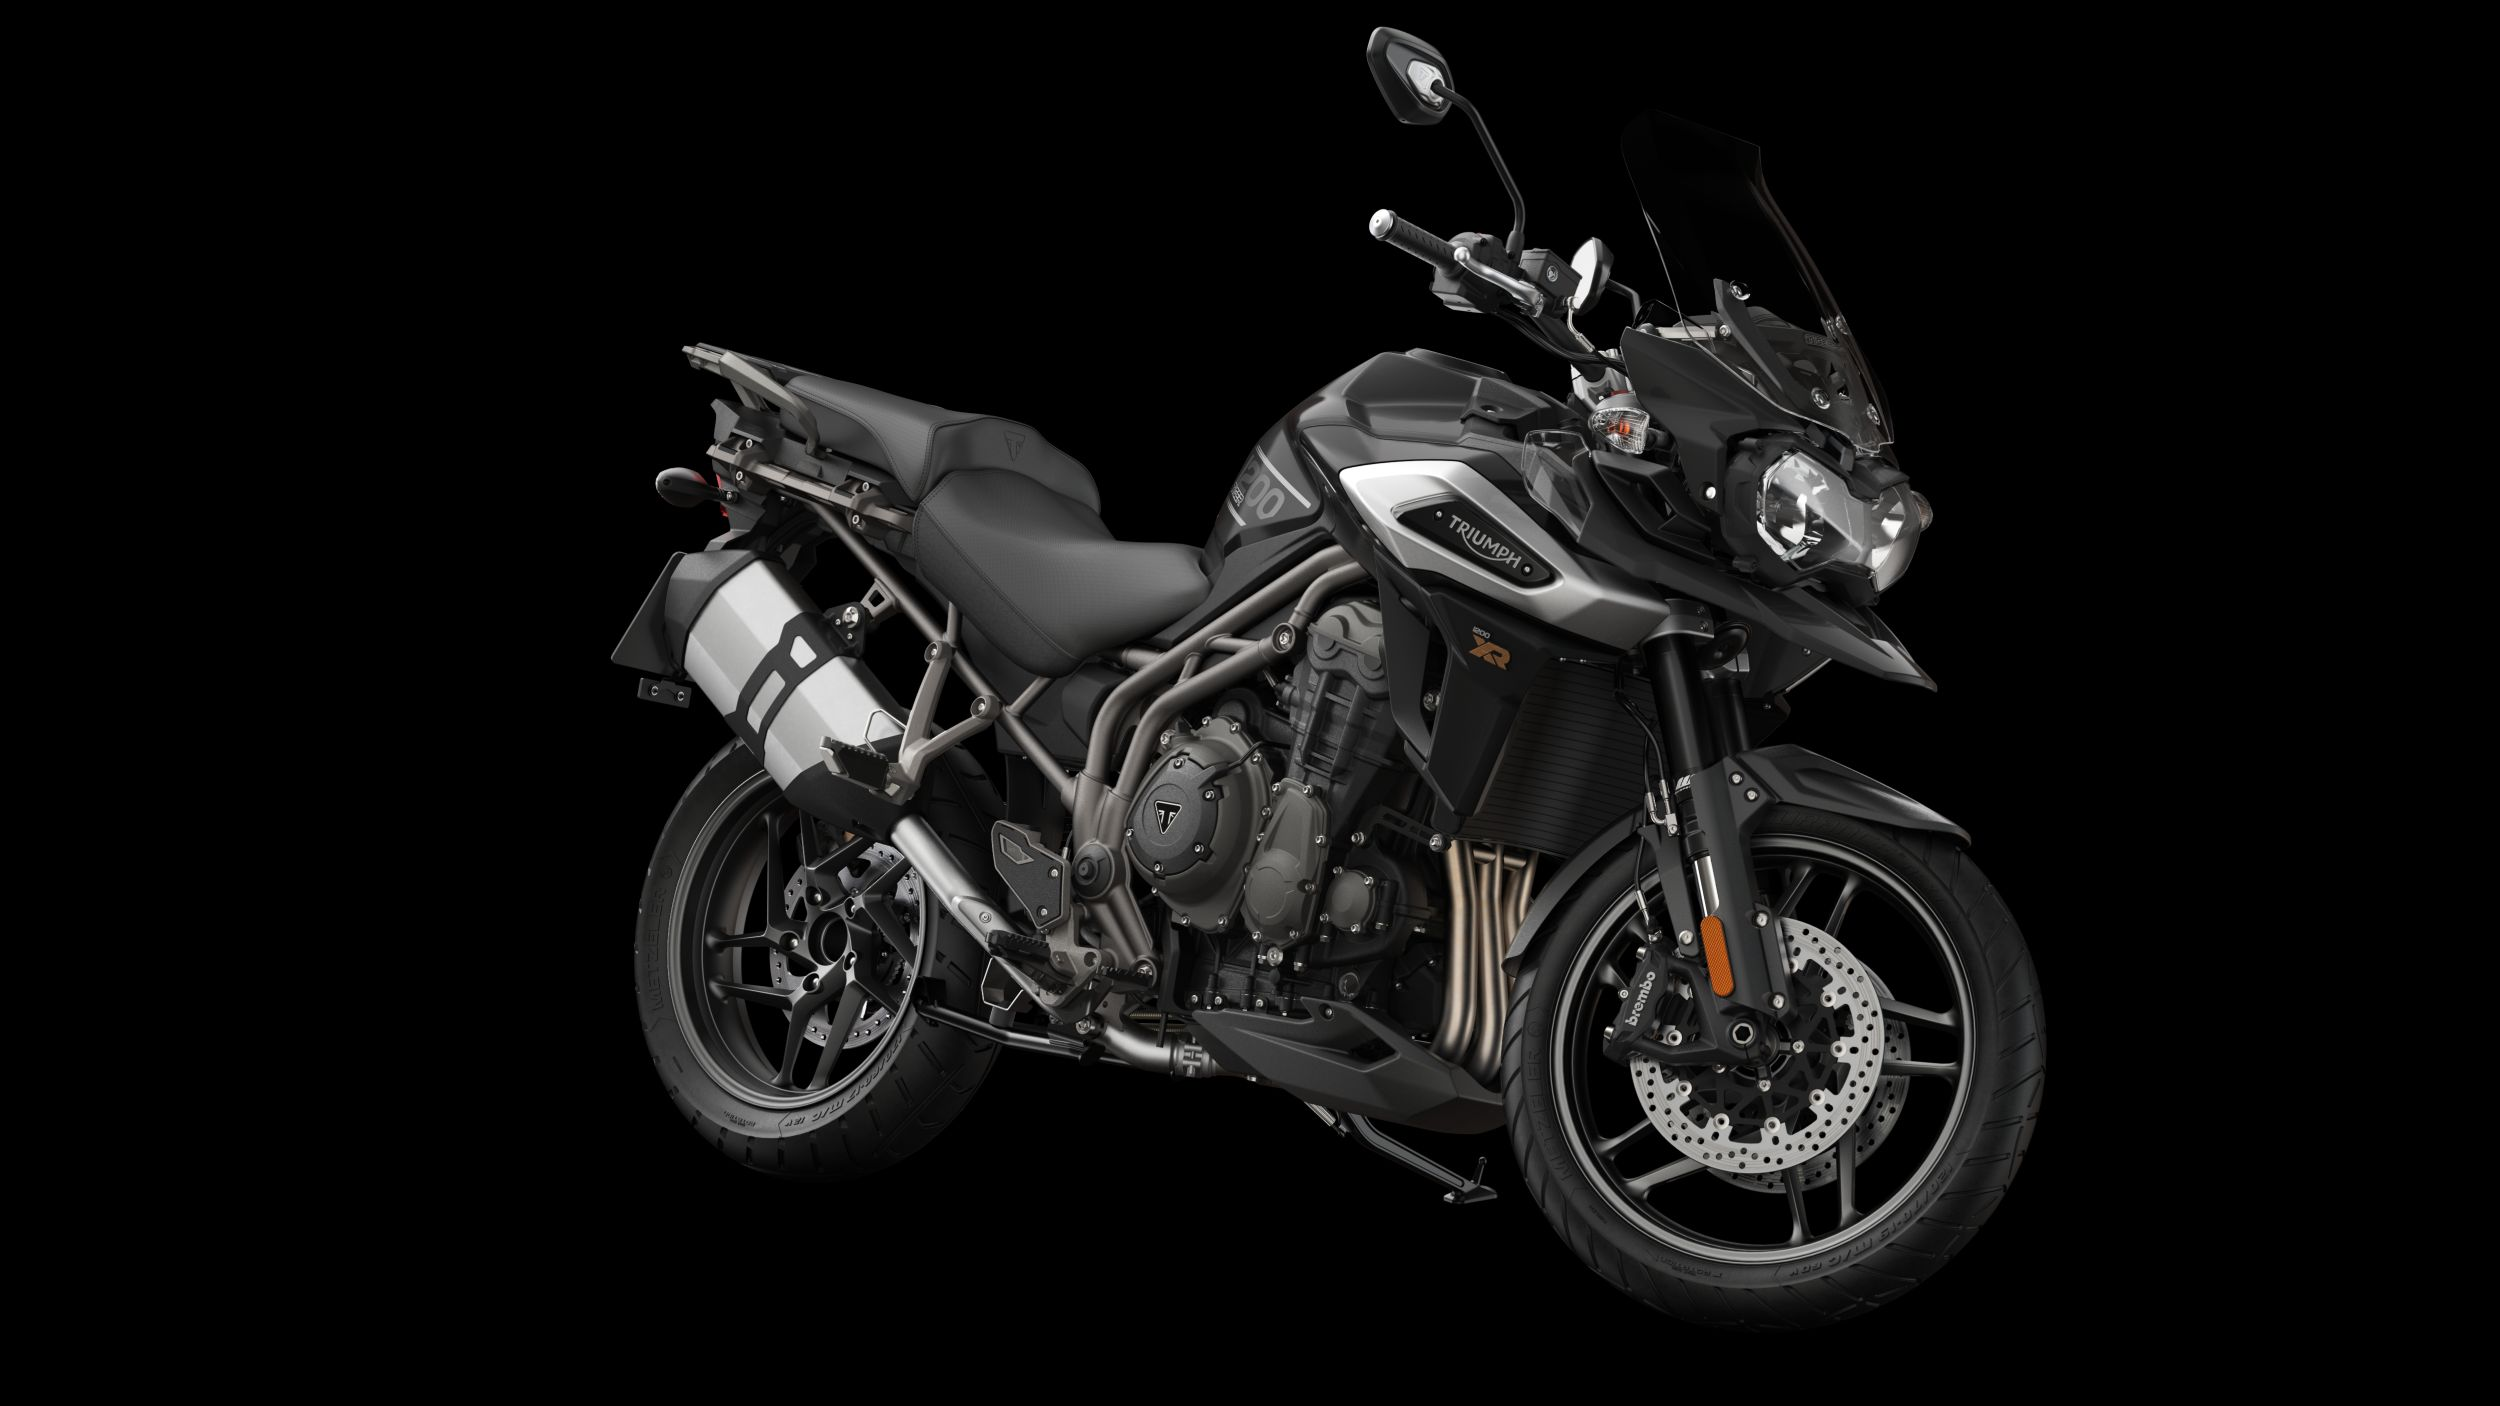 triumph tiger 1200 xr all technical data of the model tiger 1200 xr from triumph. Black Bedroom Furniture Sets. Home Design Ideas